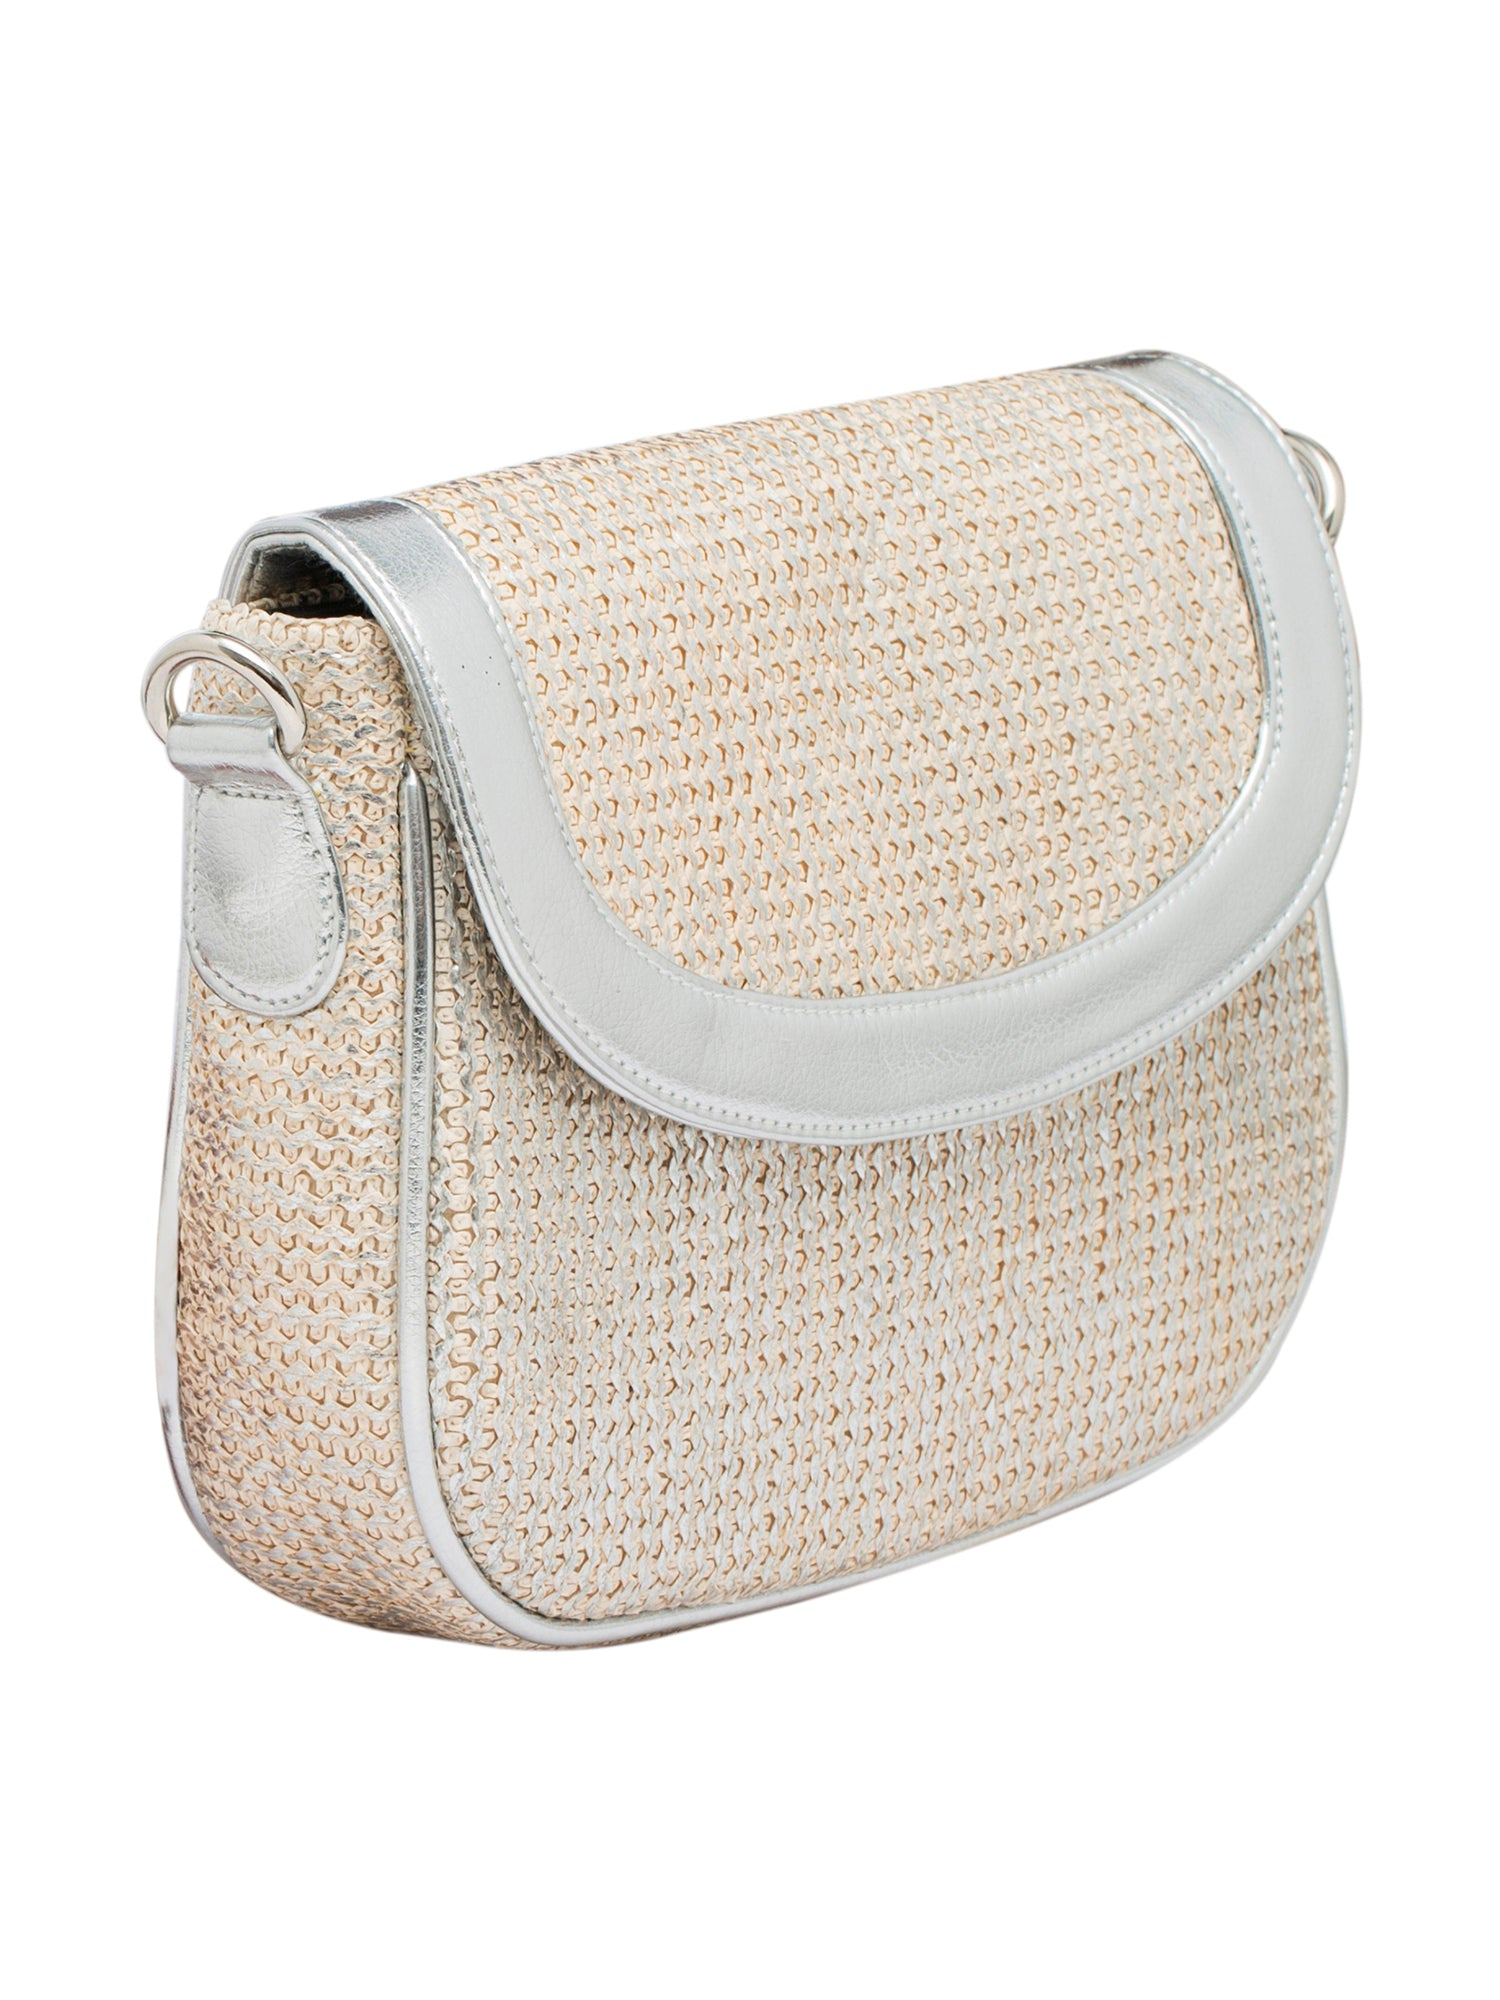 Created for fashion lovers, this Matt Silver Sling Bag for women by TARUSA is a real head turner. Featuring a spacious compartment with a Snap Button closure, it will accommodate all your essentials in a safe manner. Made of Fabric for durability, it has a shoulder strap for carrying comfort.